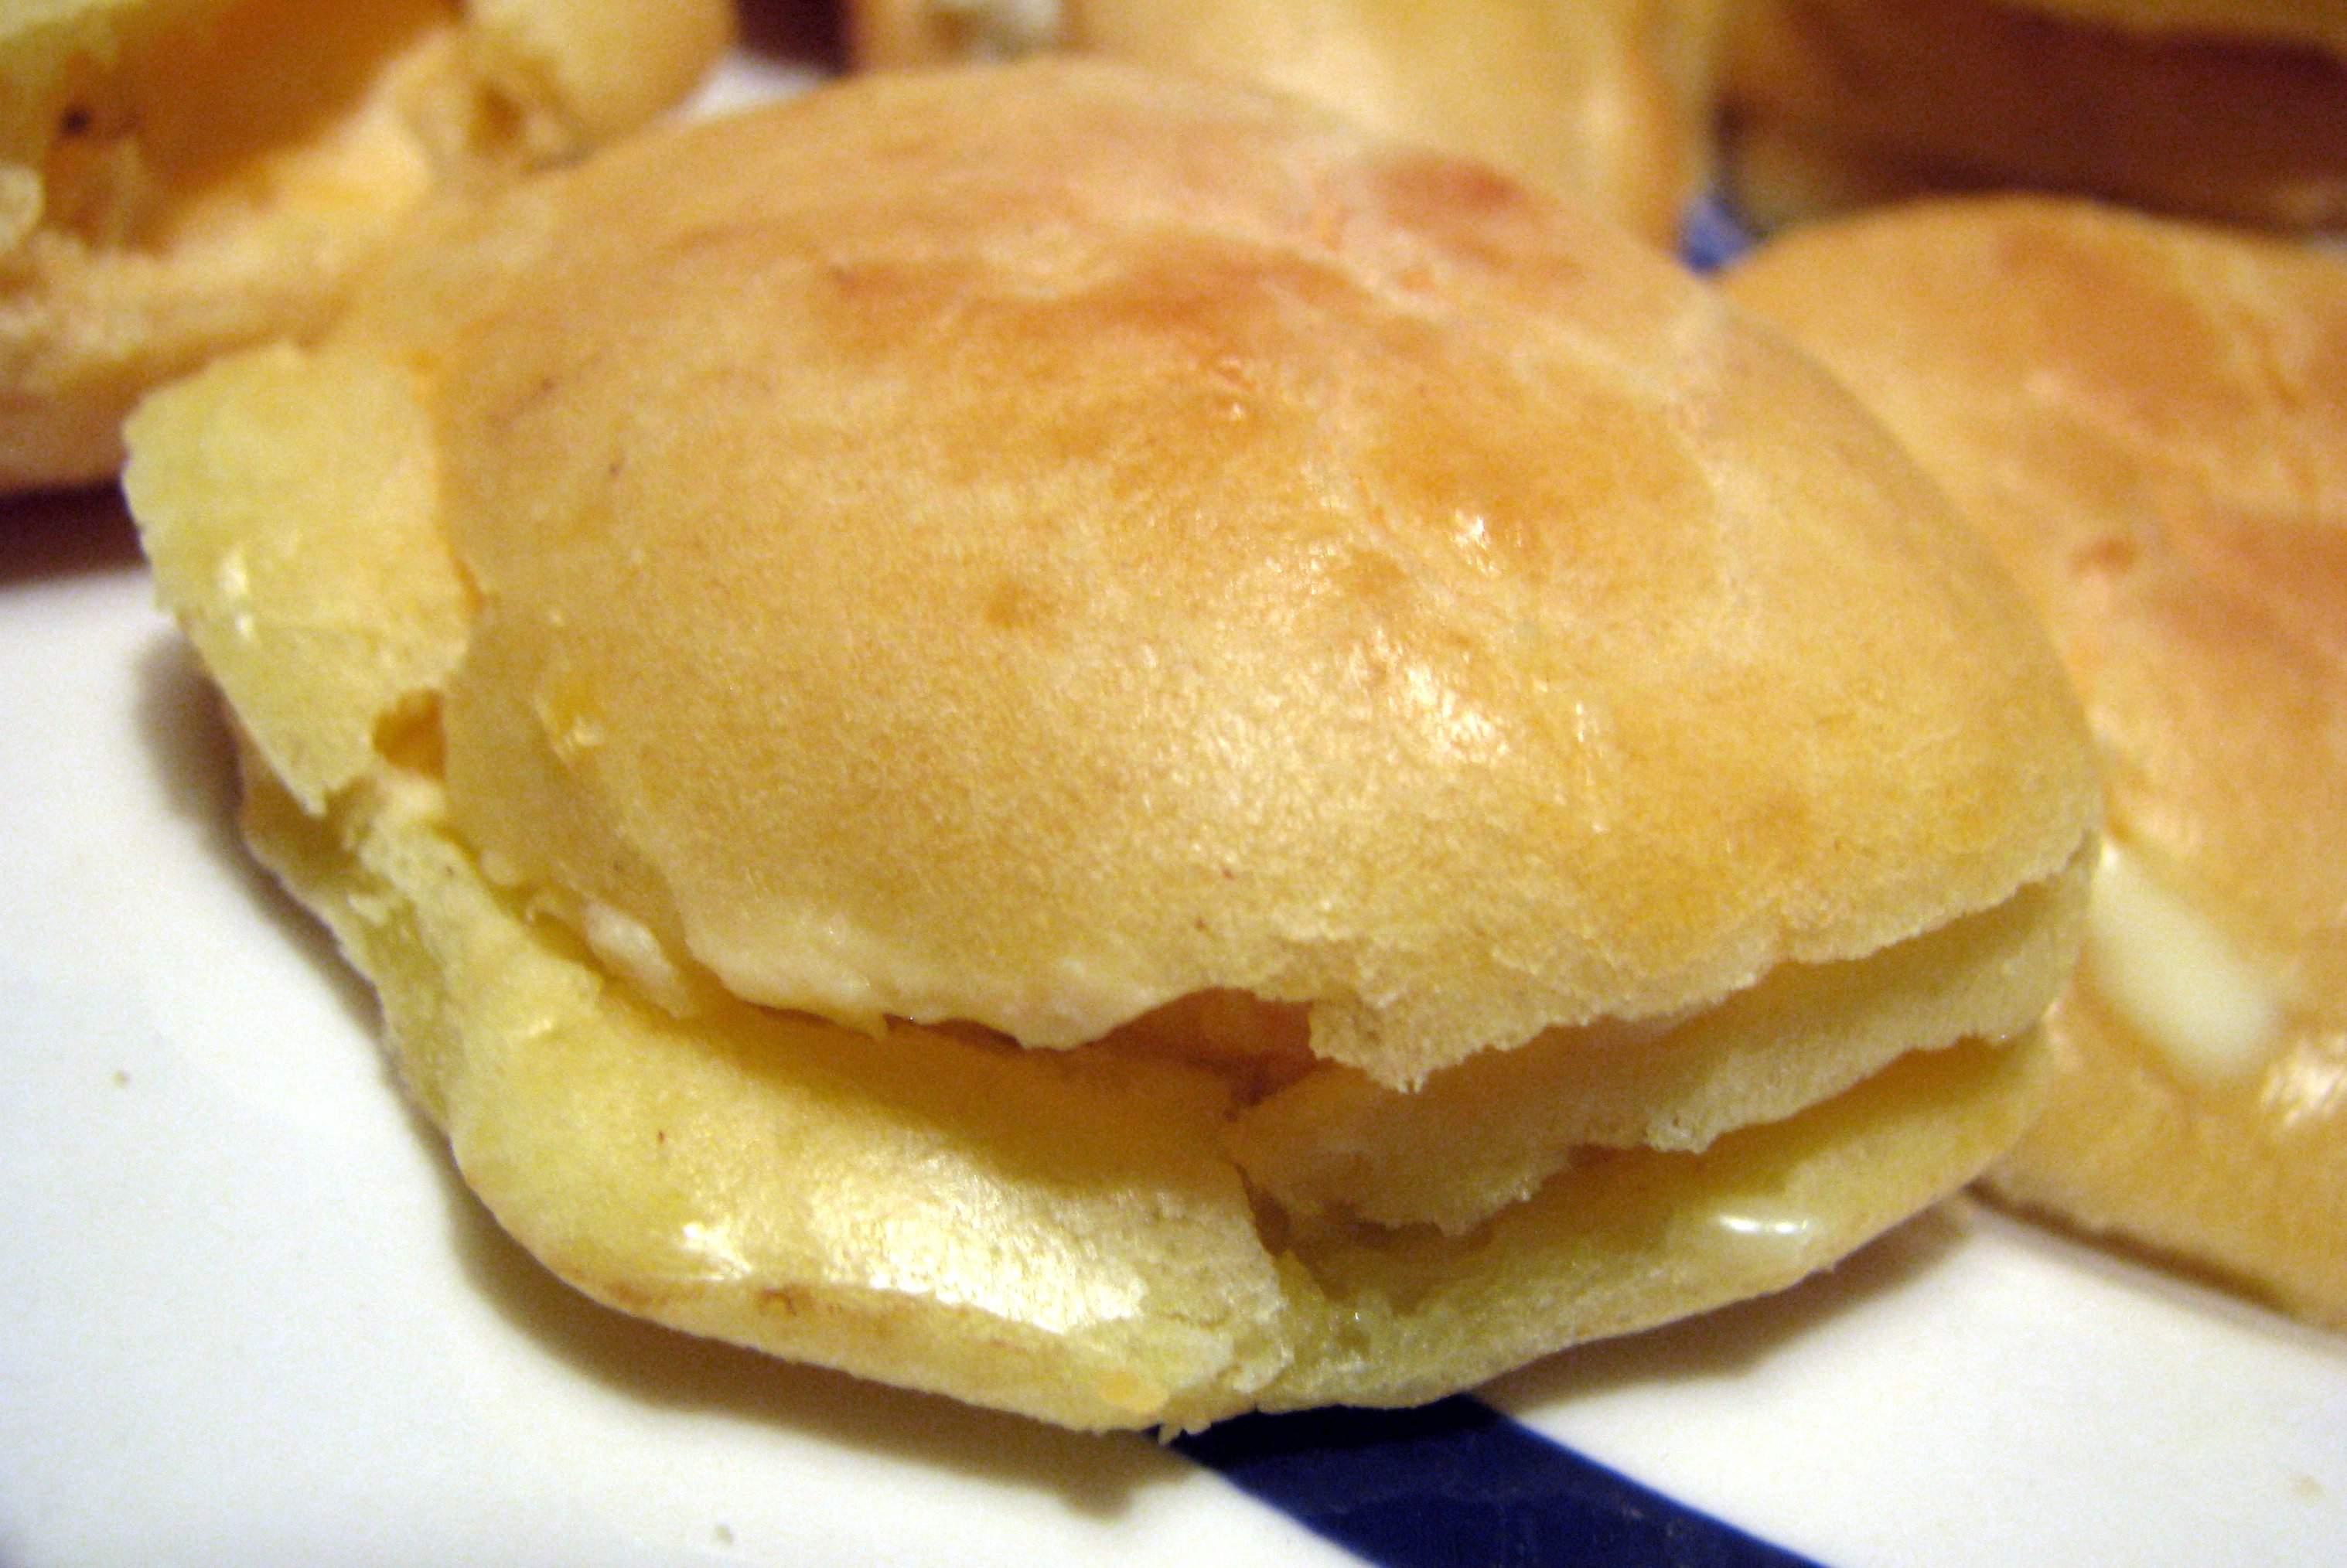 small round pastry with melted cheese inside